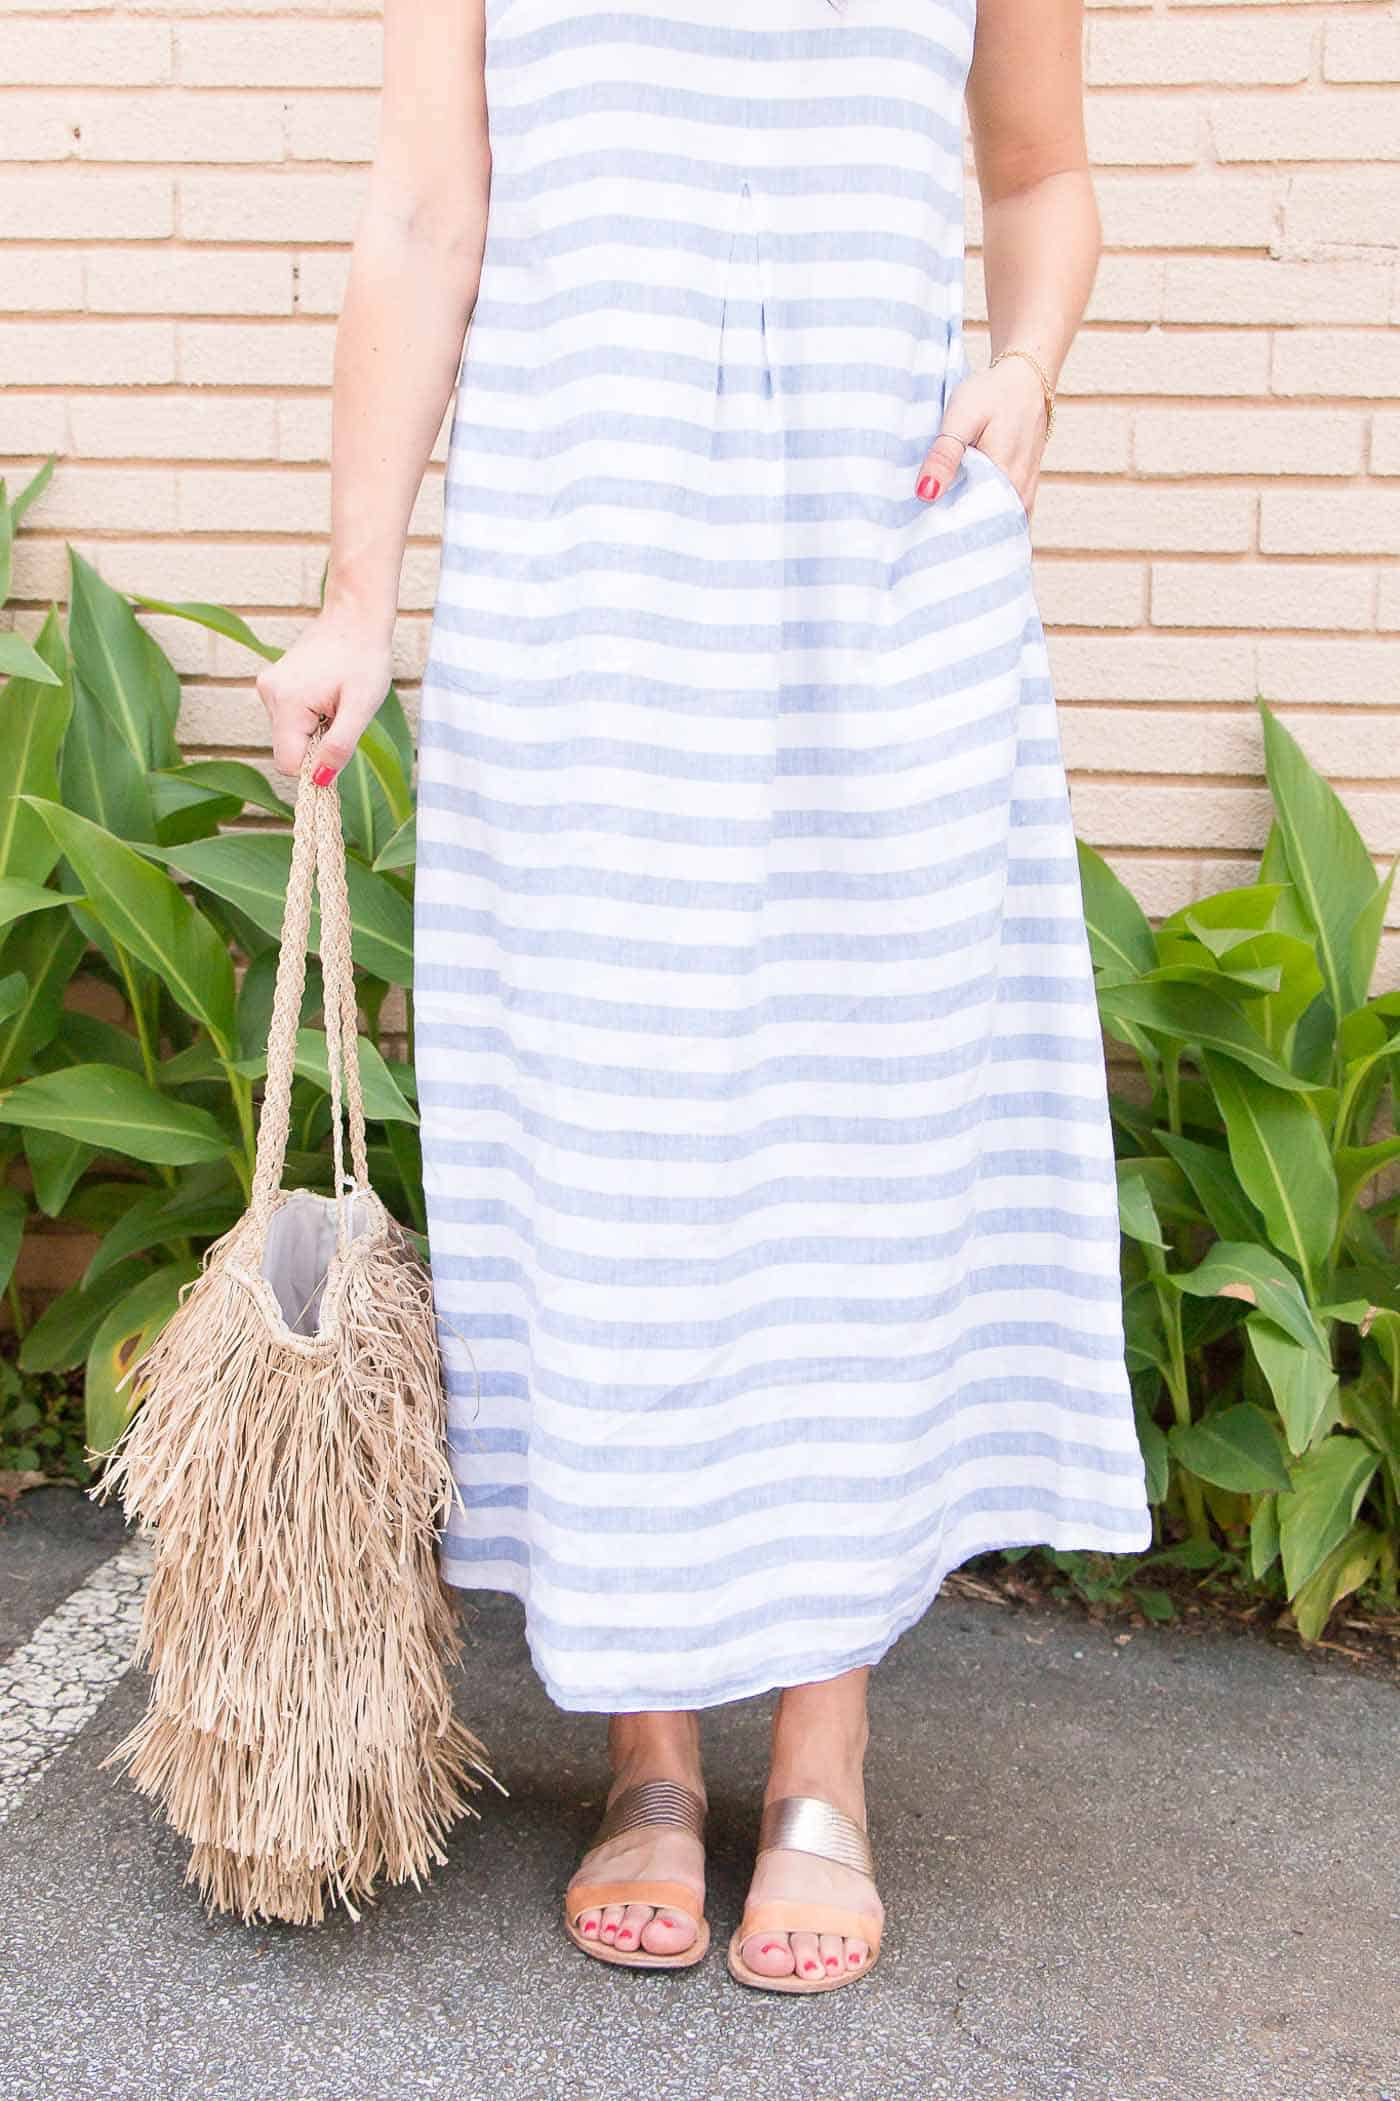 J. Jill striped summer dress - straw tote for summer, what to wear on a beach vacation - My Style Vita @mystylevita